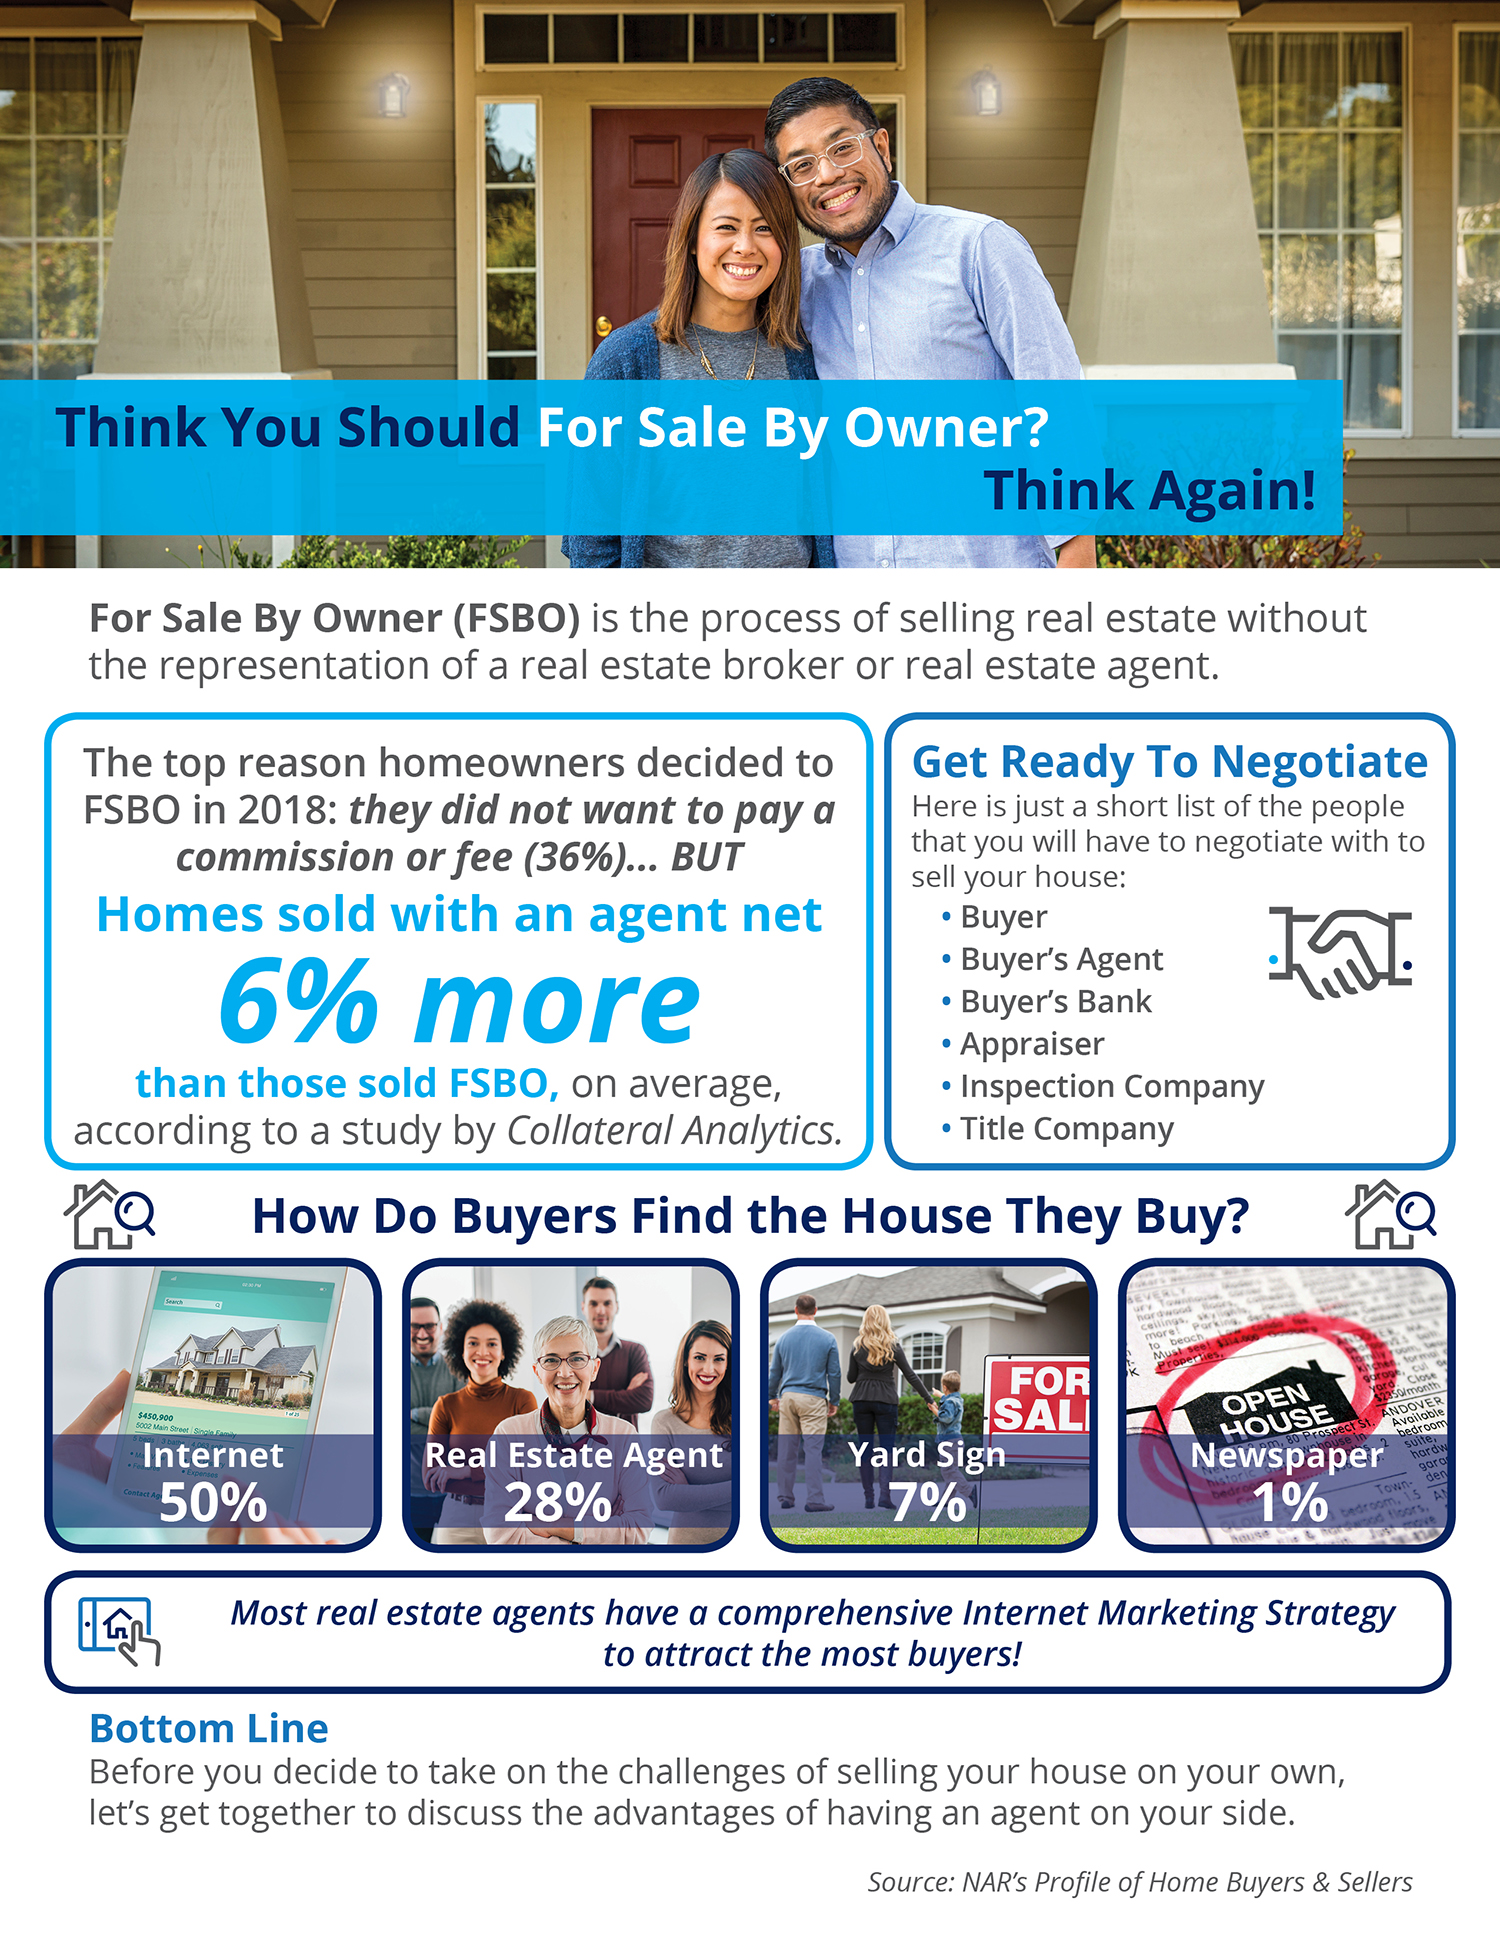 Think You Should For Sale By Owner? Think Again! [INFOGRAPHIC] | Bridge Builders